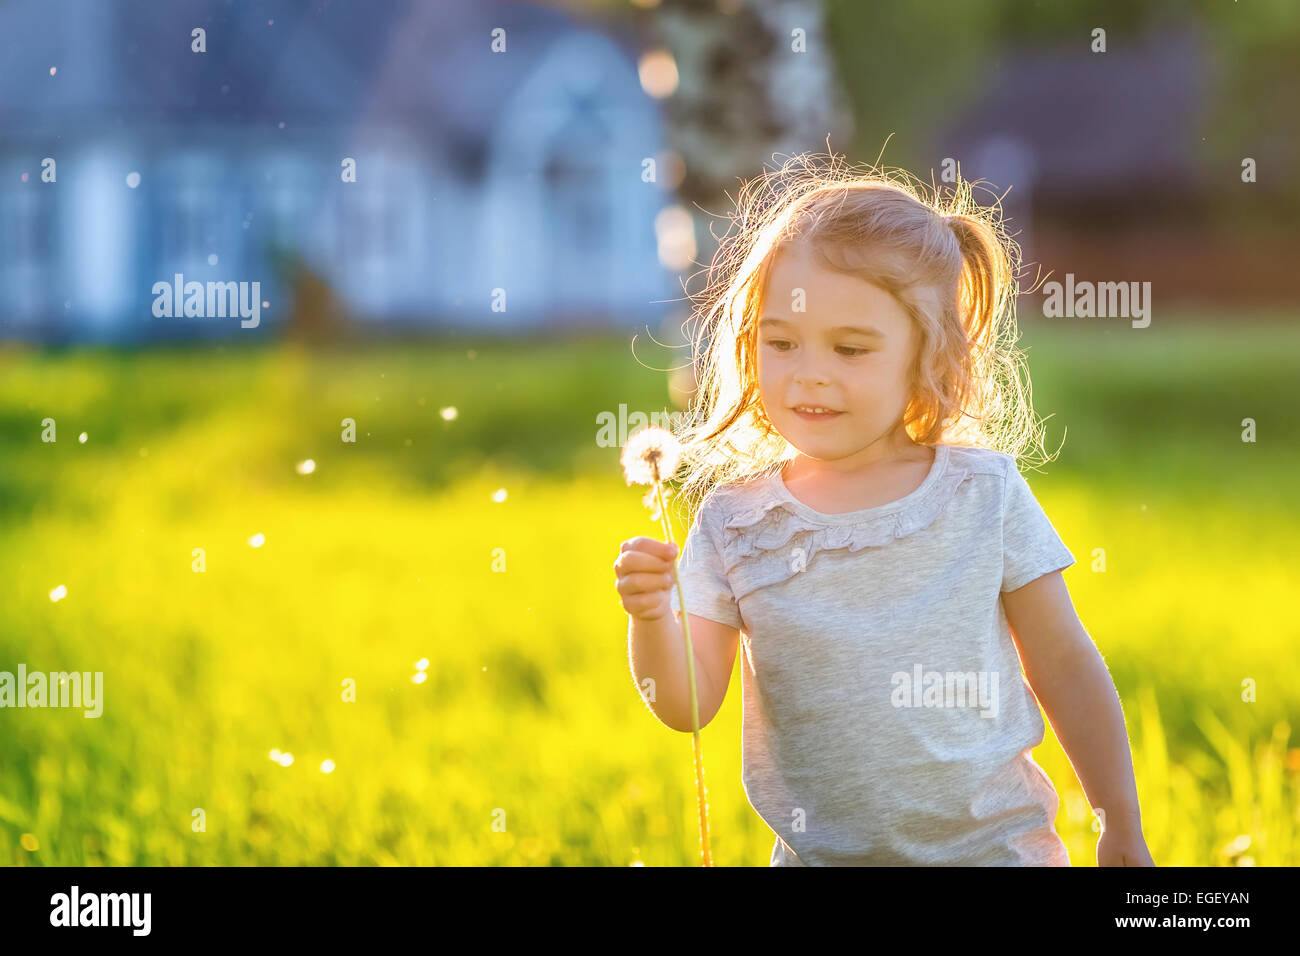 Little girl in spring sunny park - Stock Image